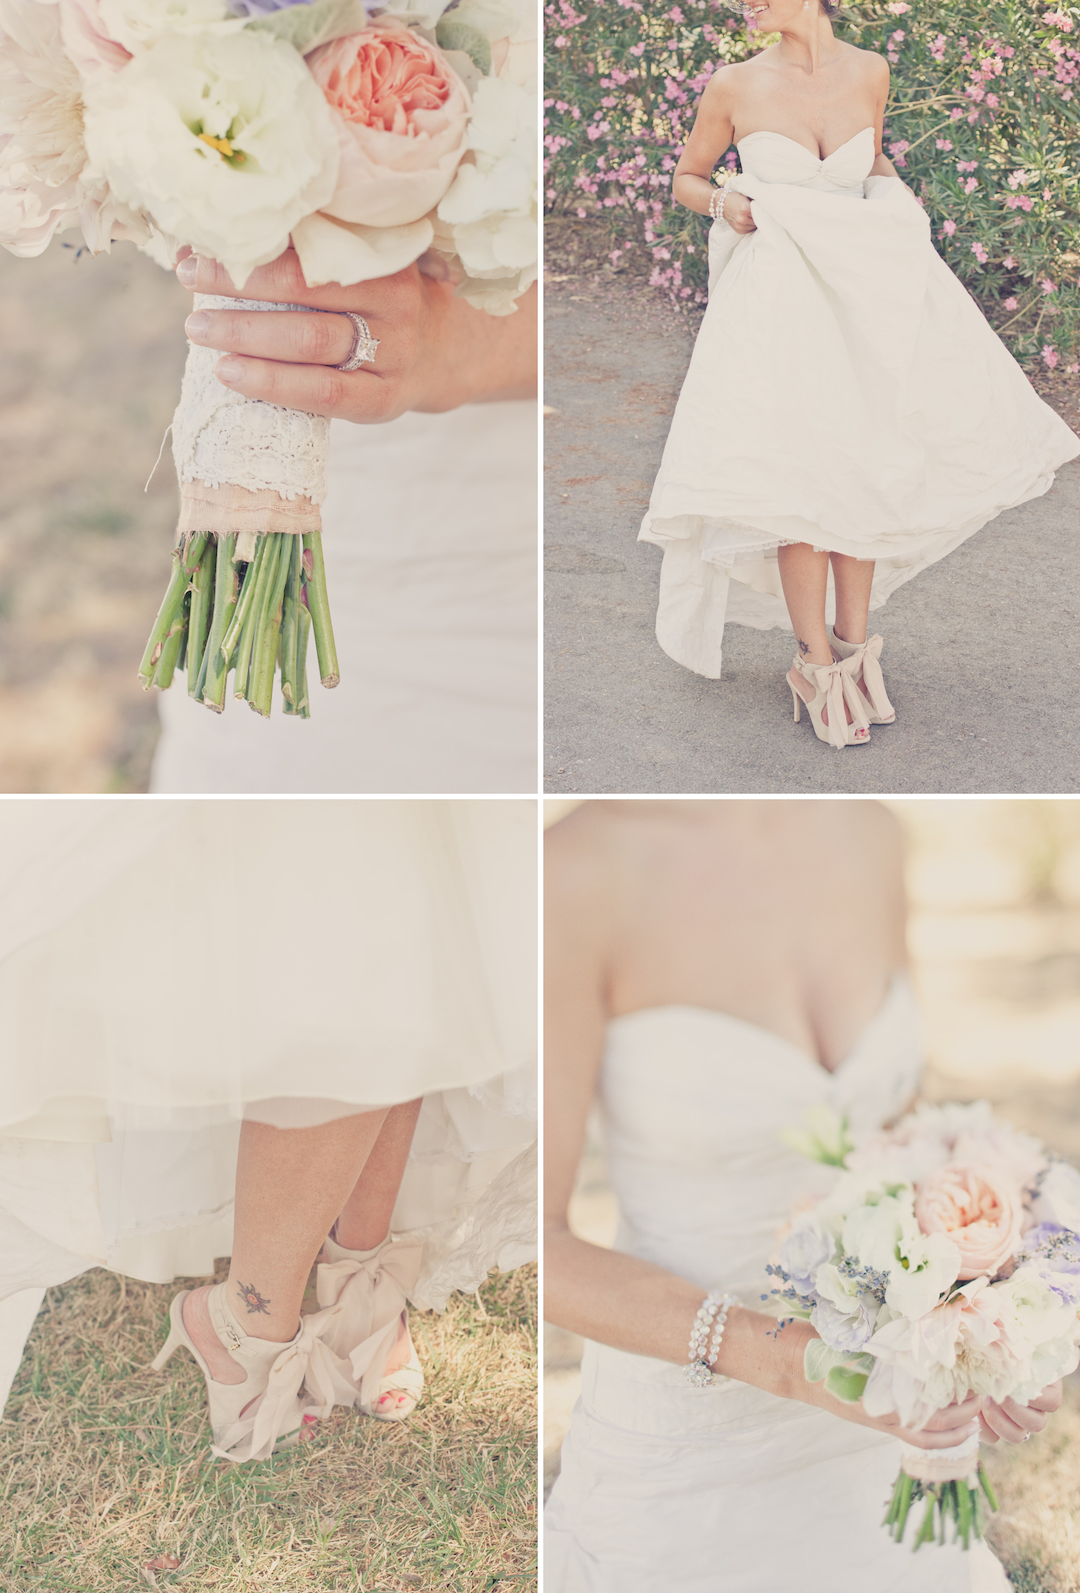 Bridesmaids Shoes For Outdoor Wedding - Wedding Photography Website